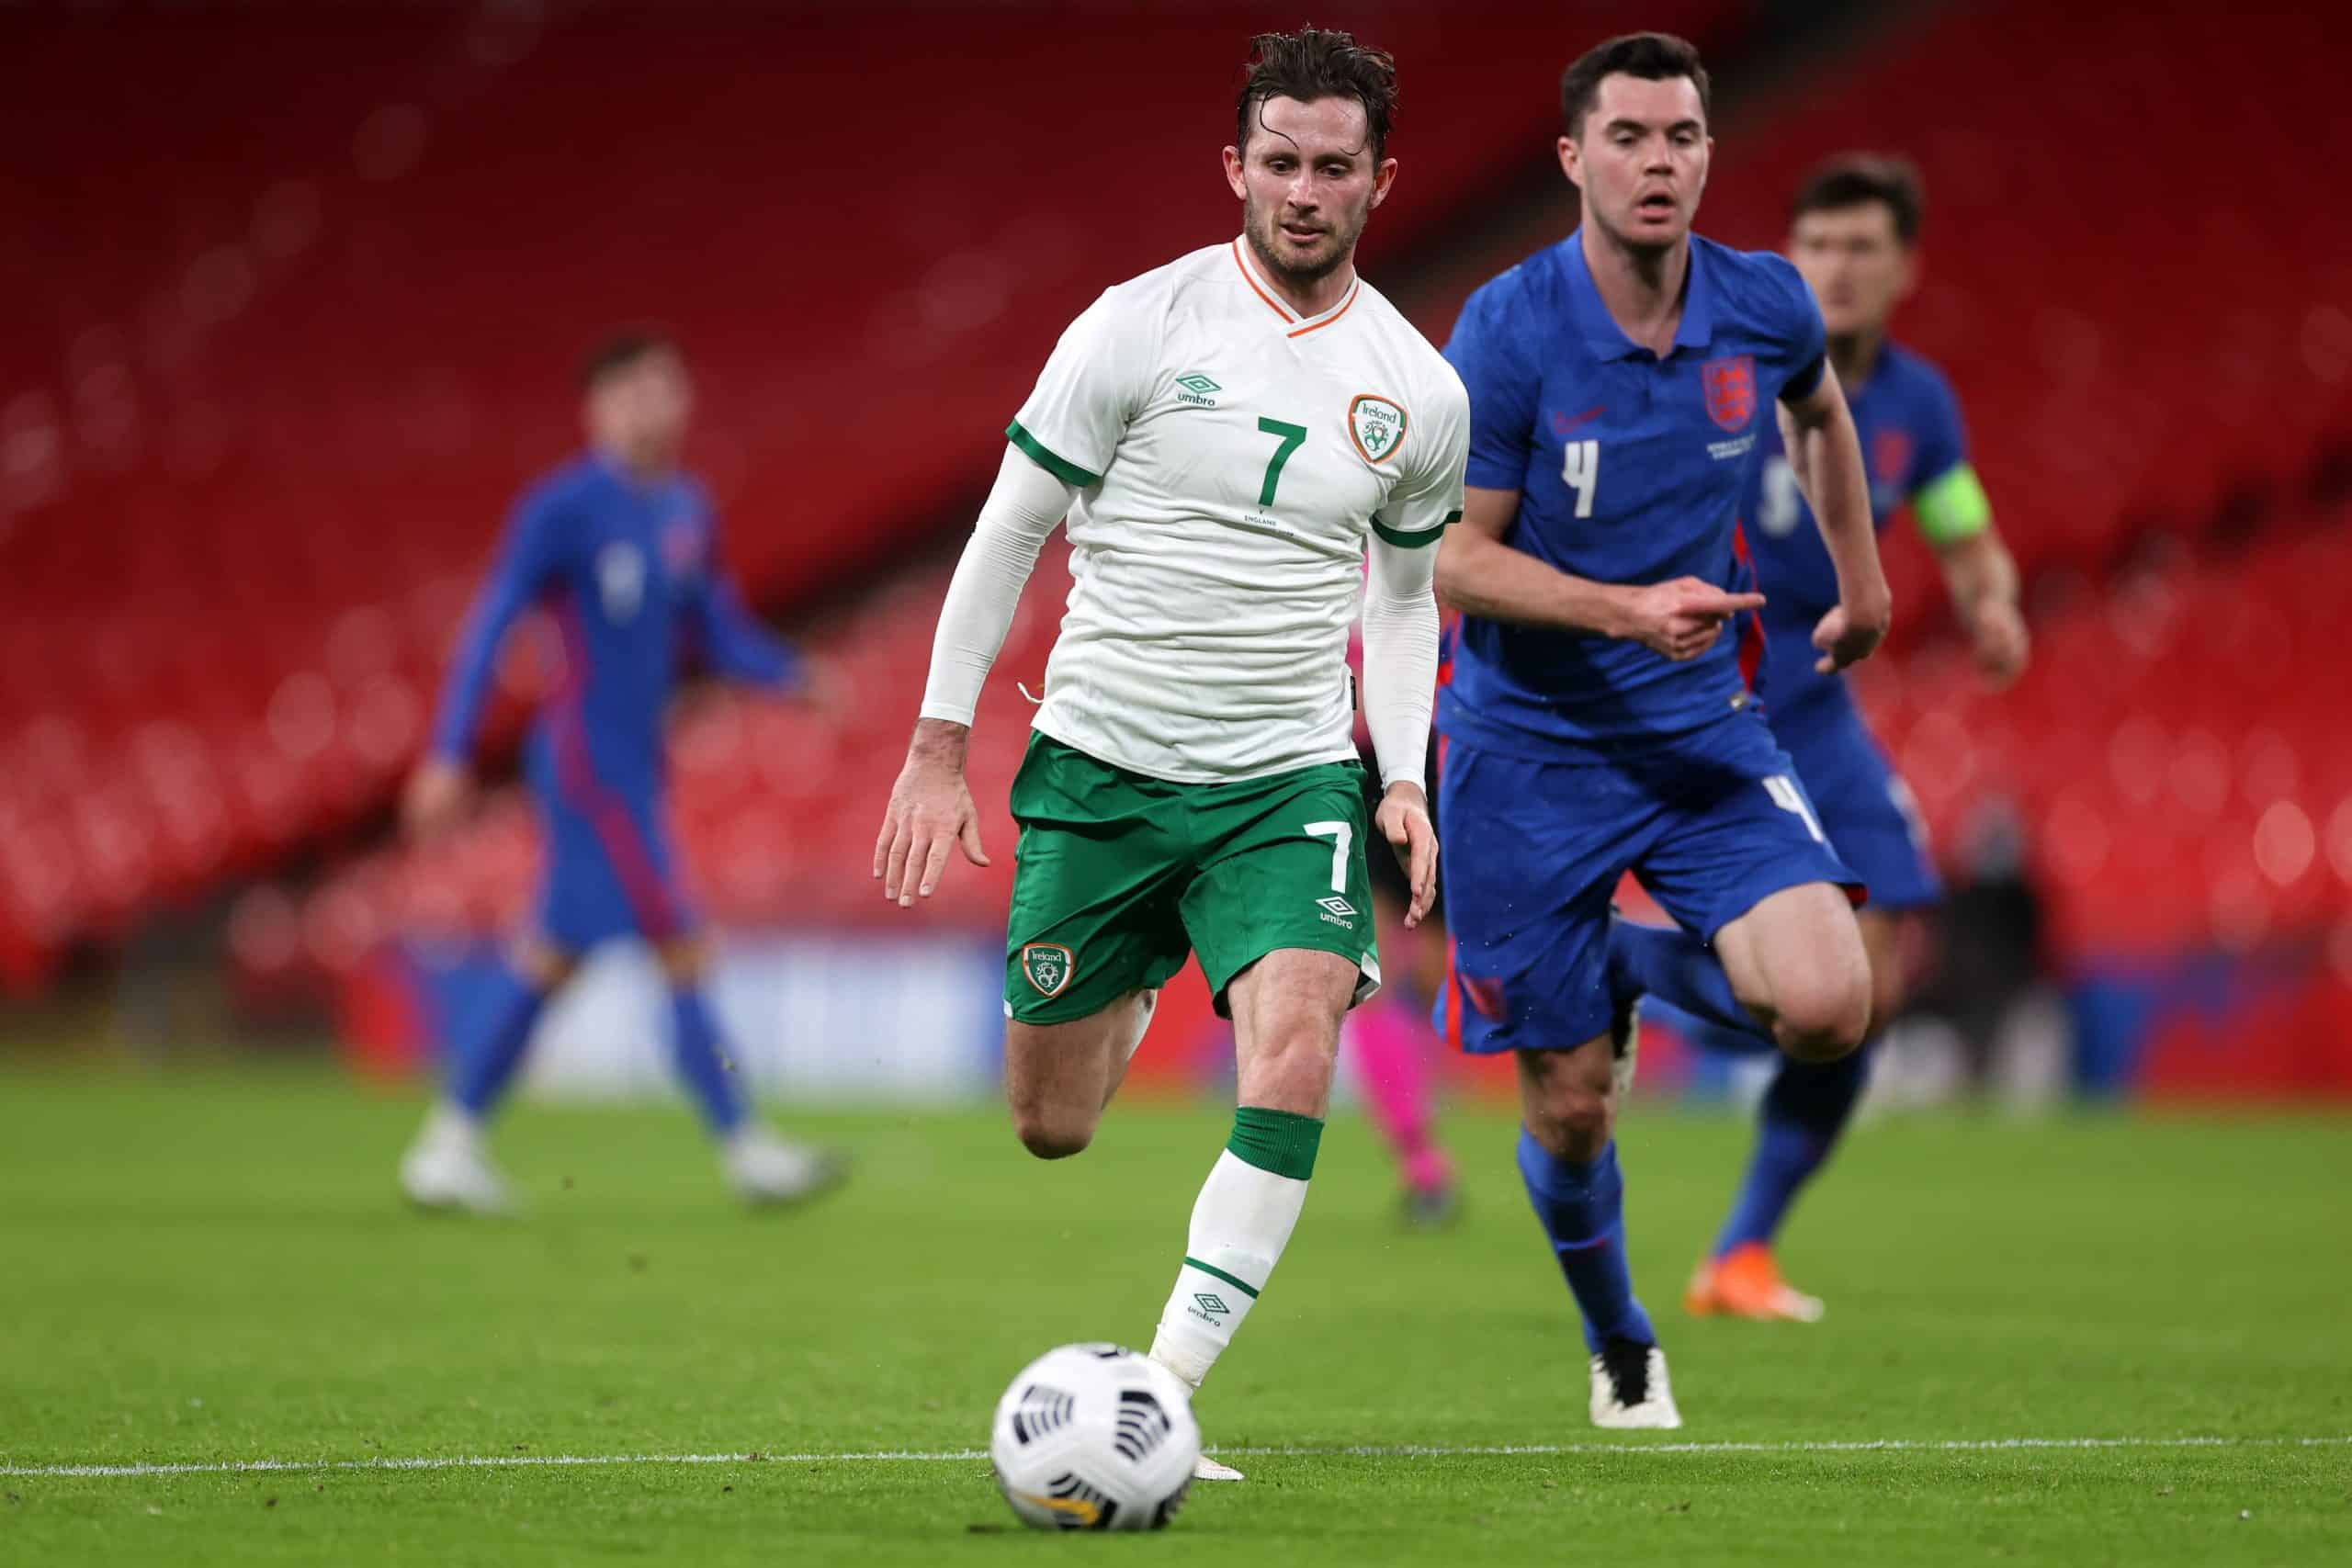 Hungary vs Republic of Ireland betting tips: Preview, predictions & odds